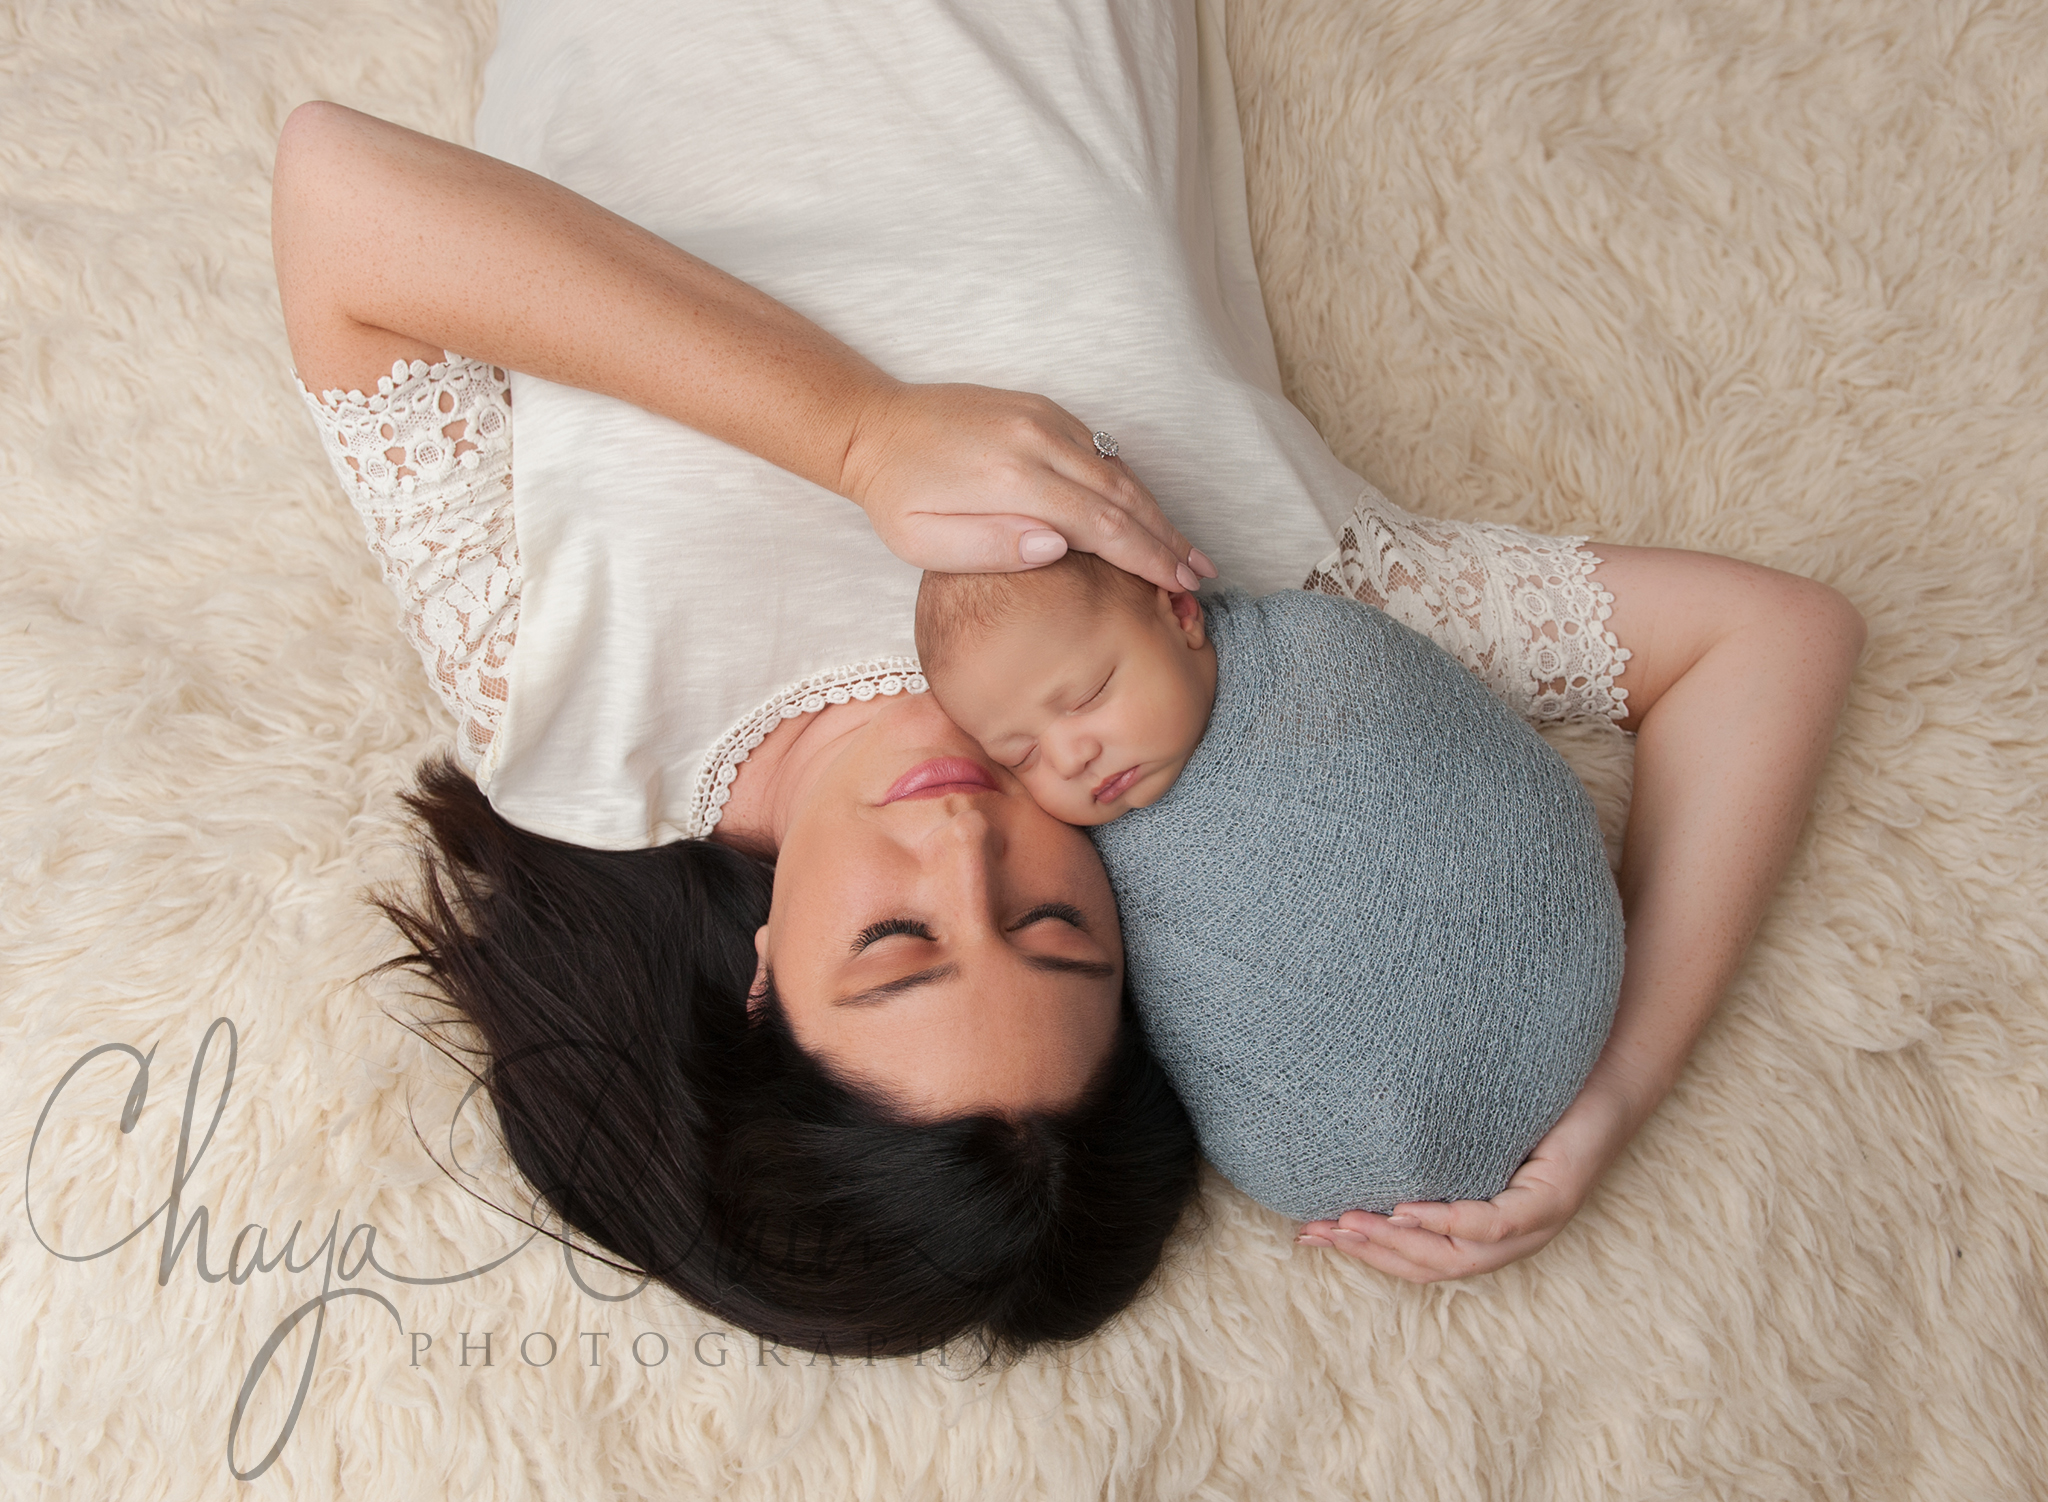 newborn baby and mom lying on rug